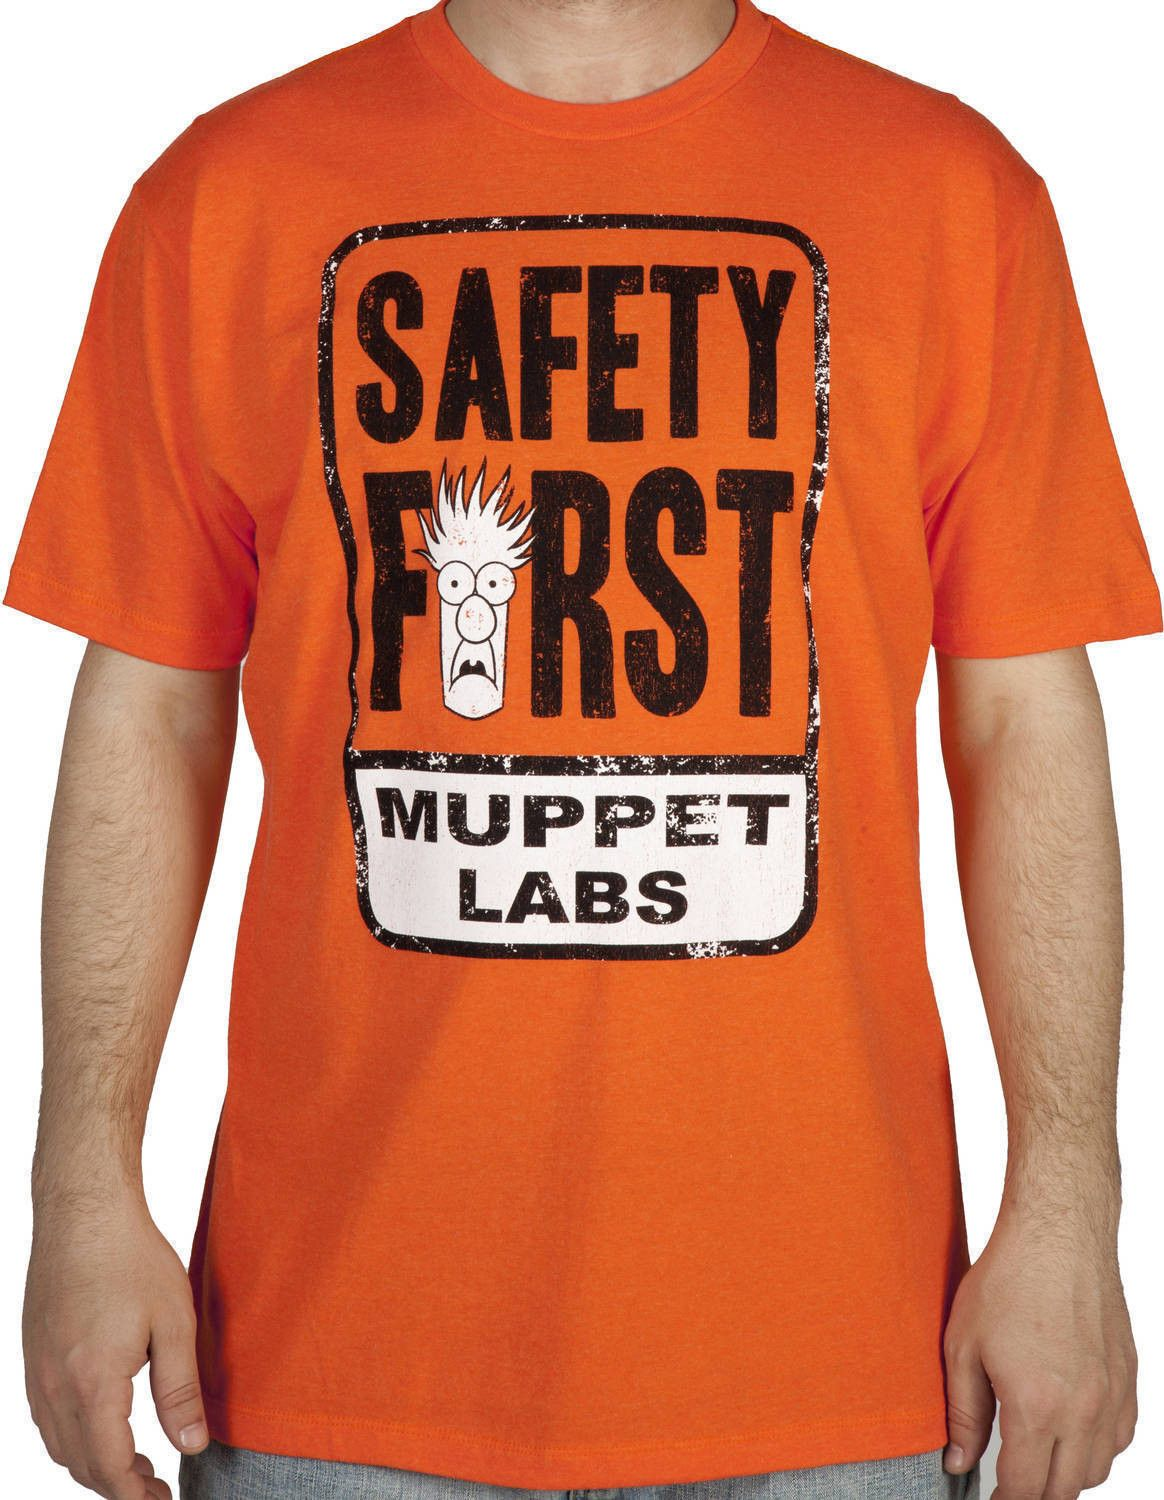 Safety Muppet Labs Shirt Muppets, Shirts, Lab safety